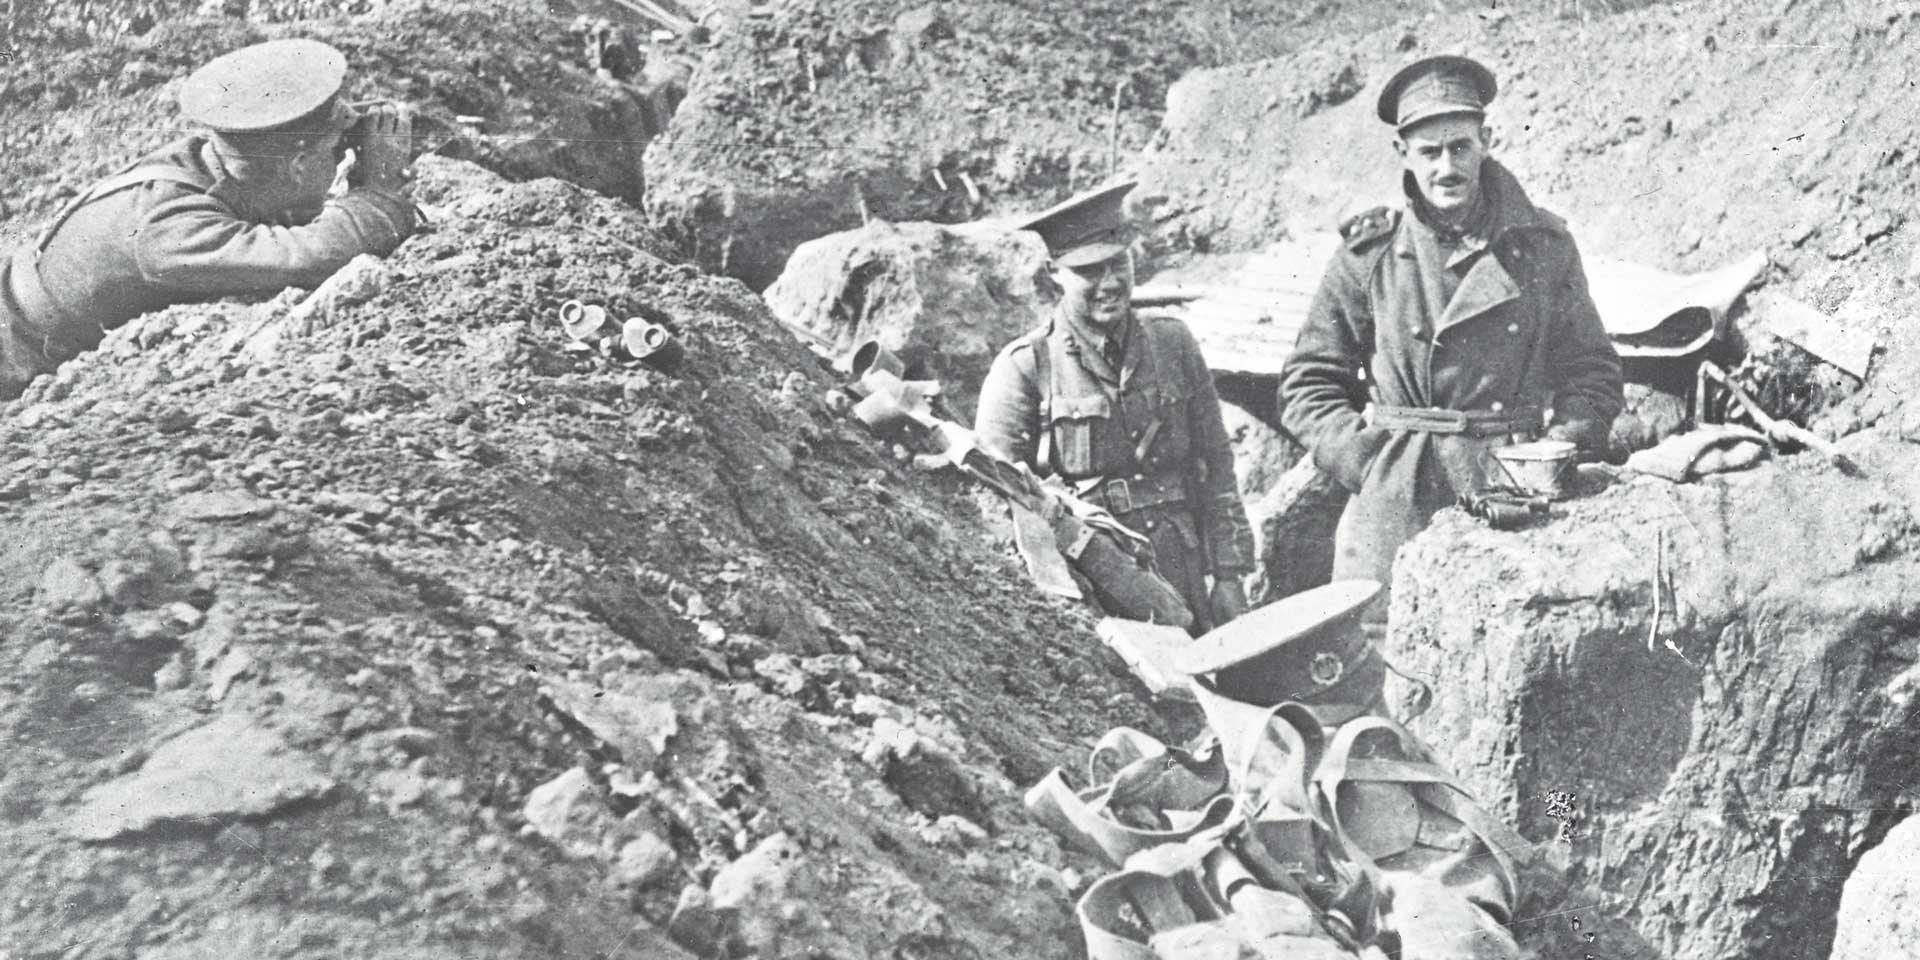 British troops in the trenches, 1914